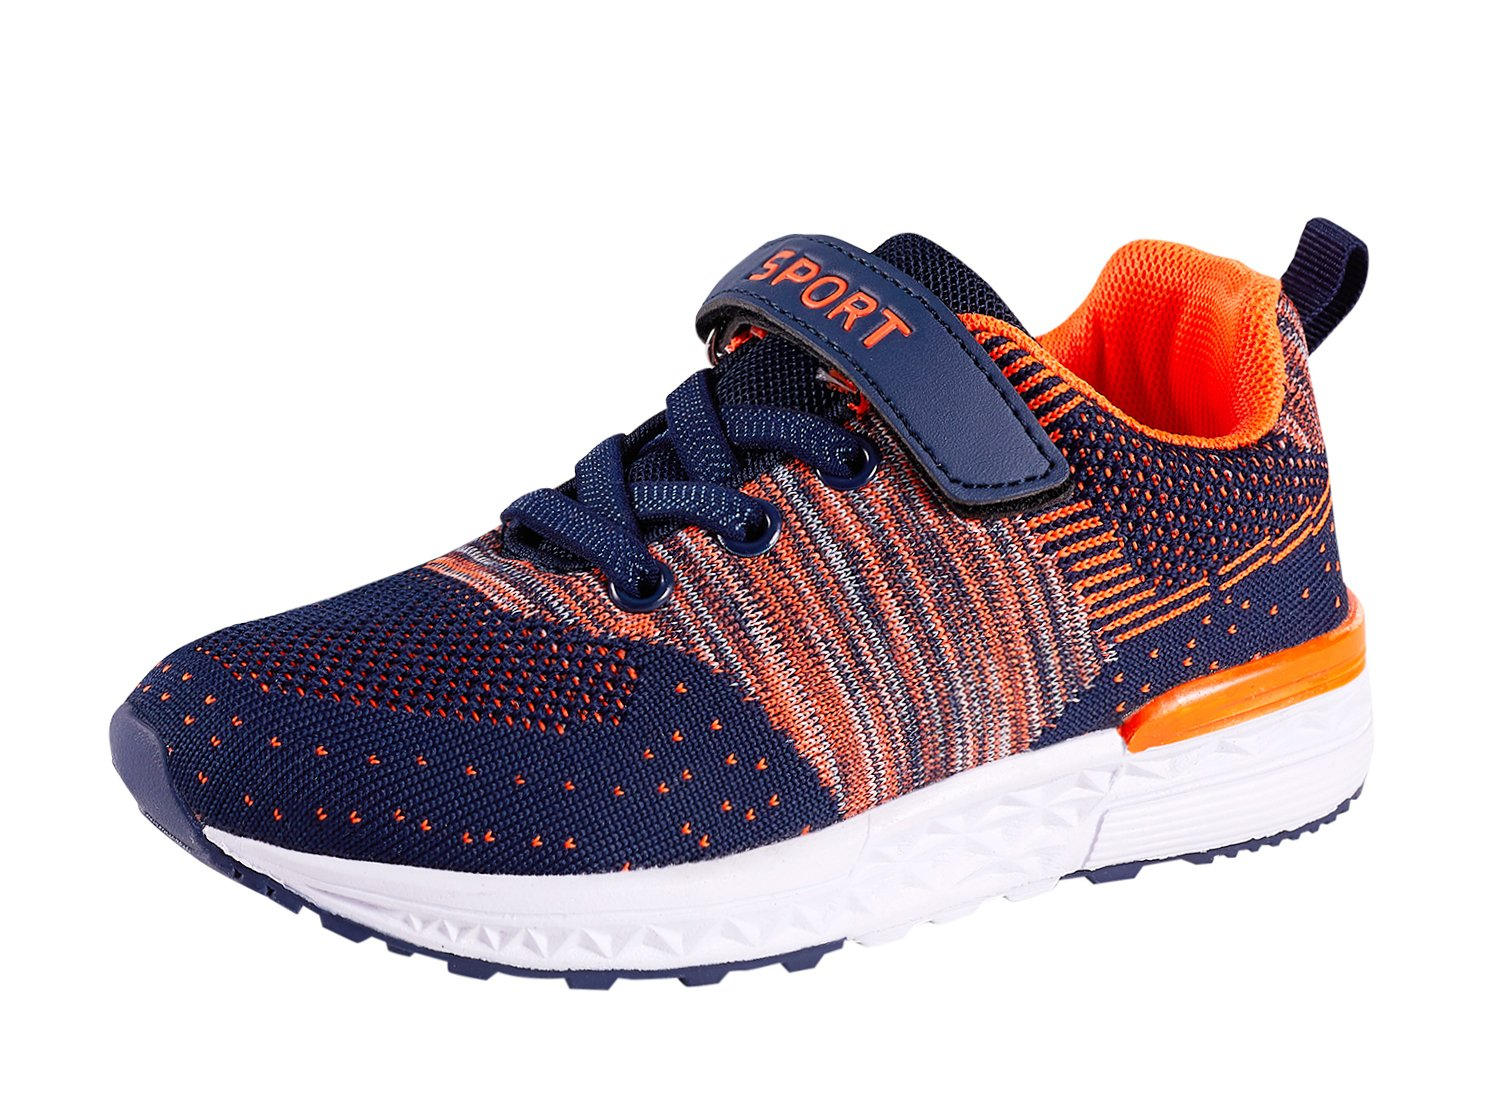 Casbeam Kids Lightweight Breathable Walking Running Tennis Shoes for Boys and Girls Orange 25